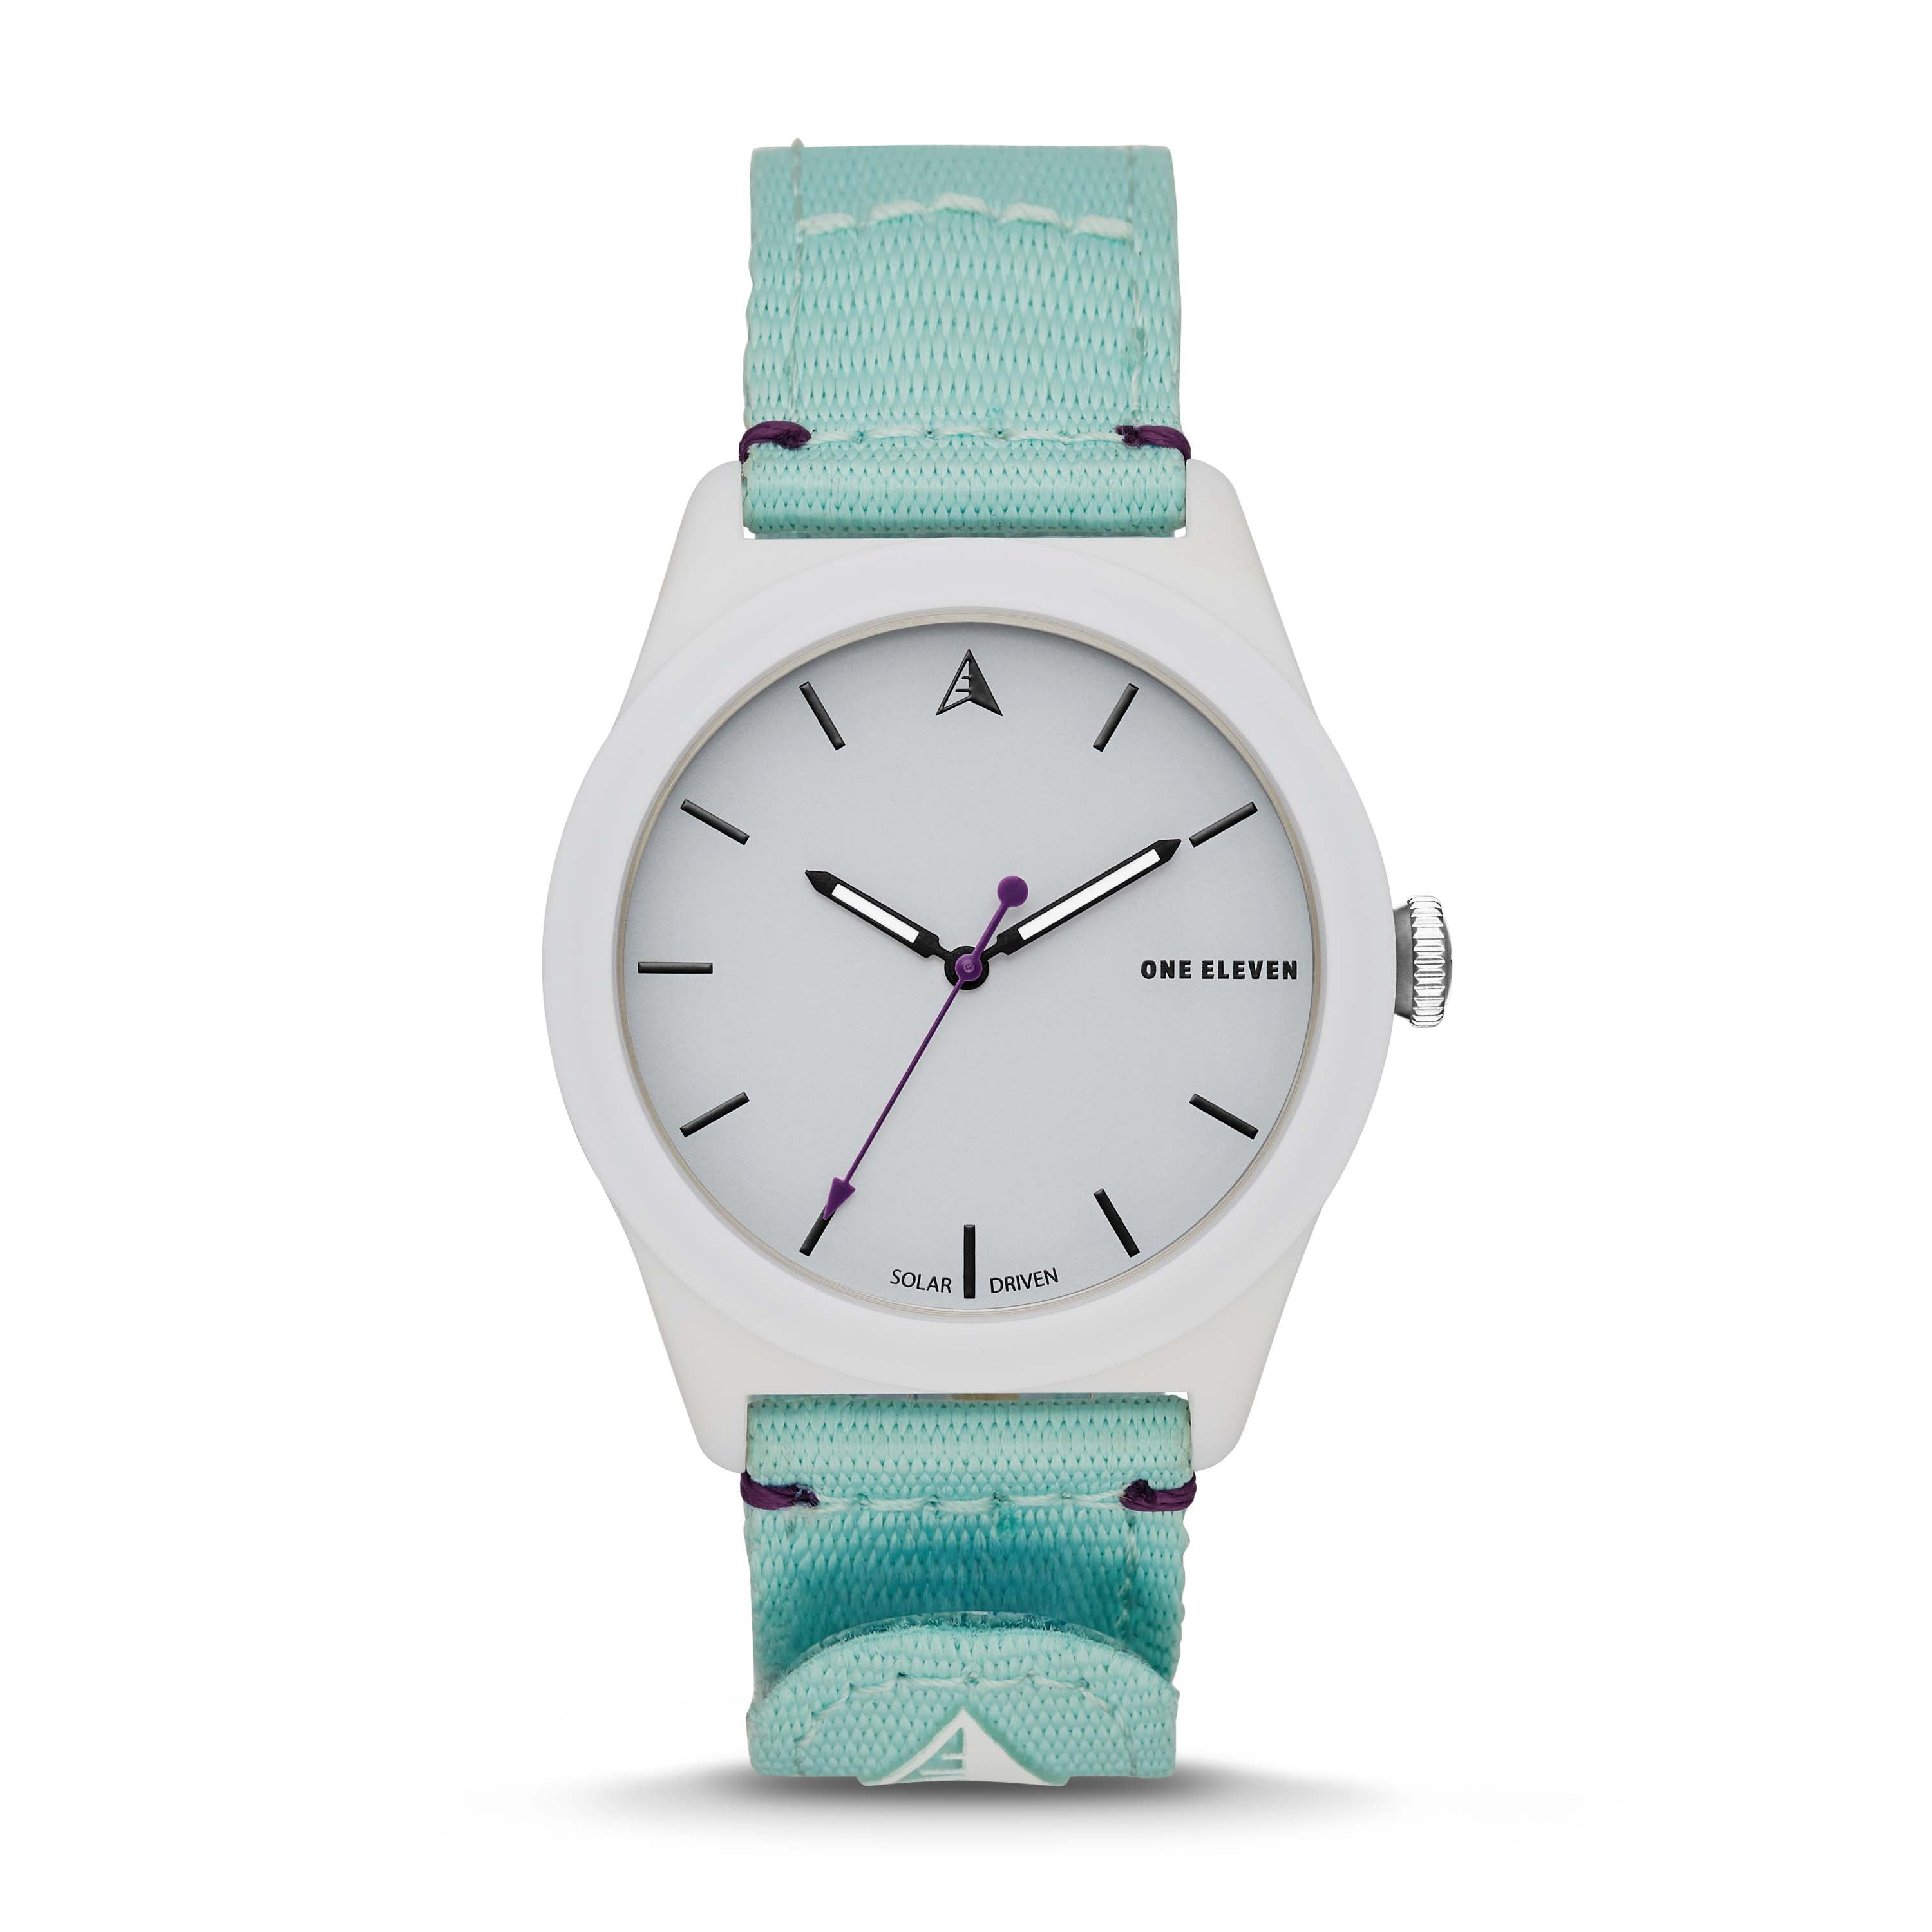 SWII Solar Three-Hand Mint rPet Watch